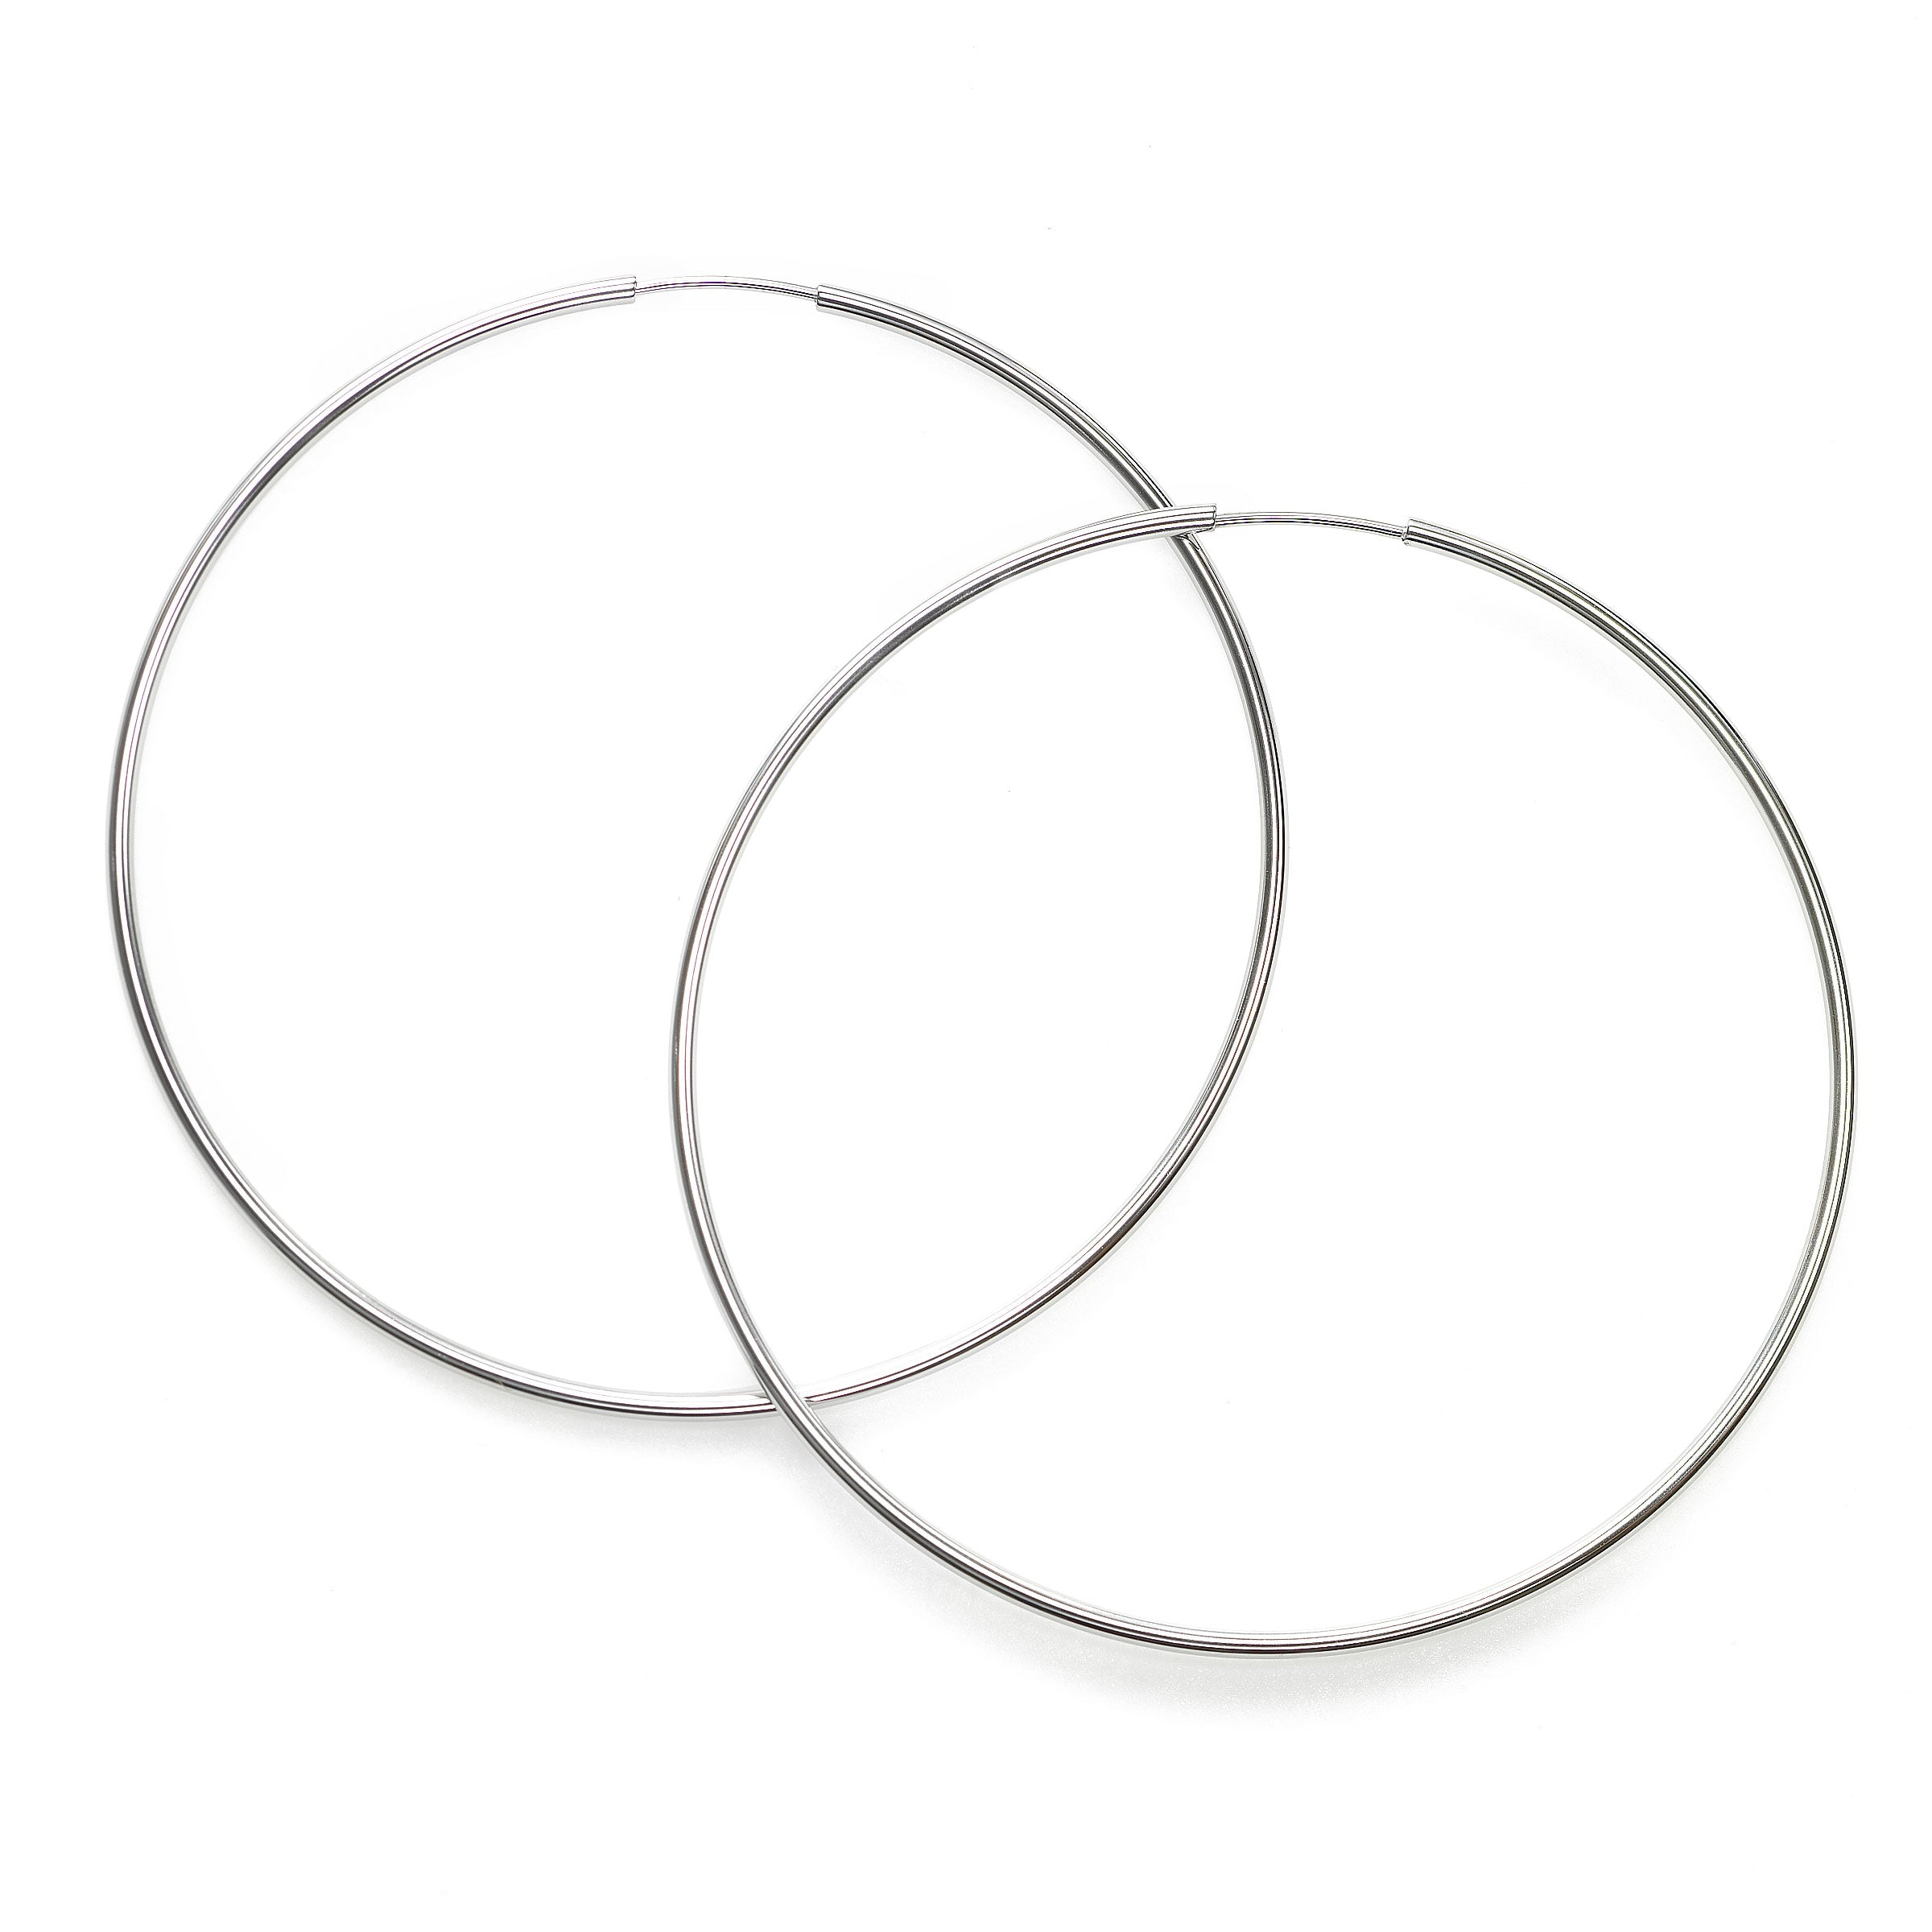 Large Endless Hoop Earrings, 2.40 Inches, 14K White Gold